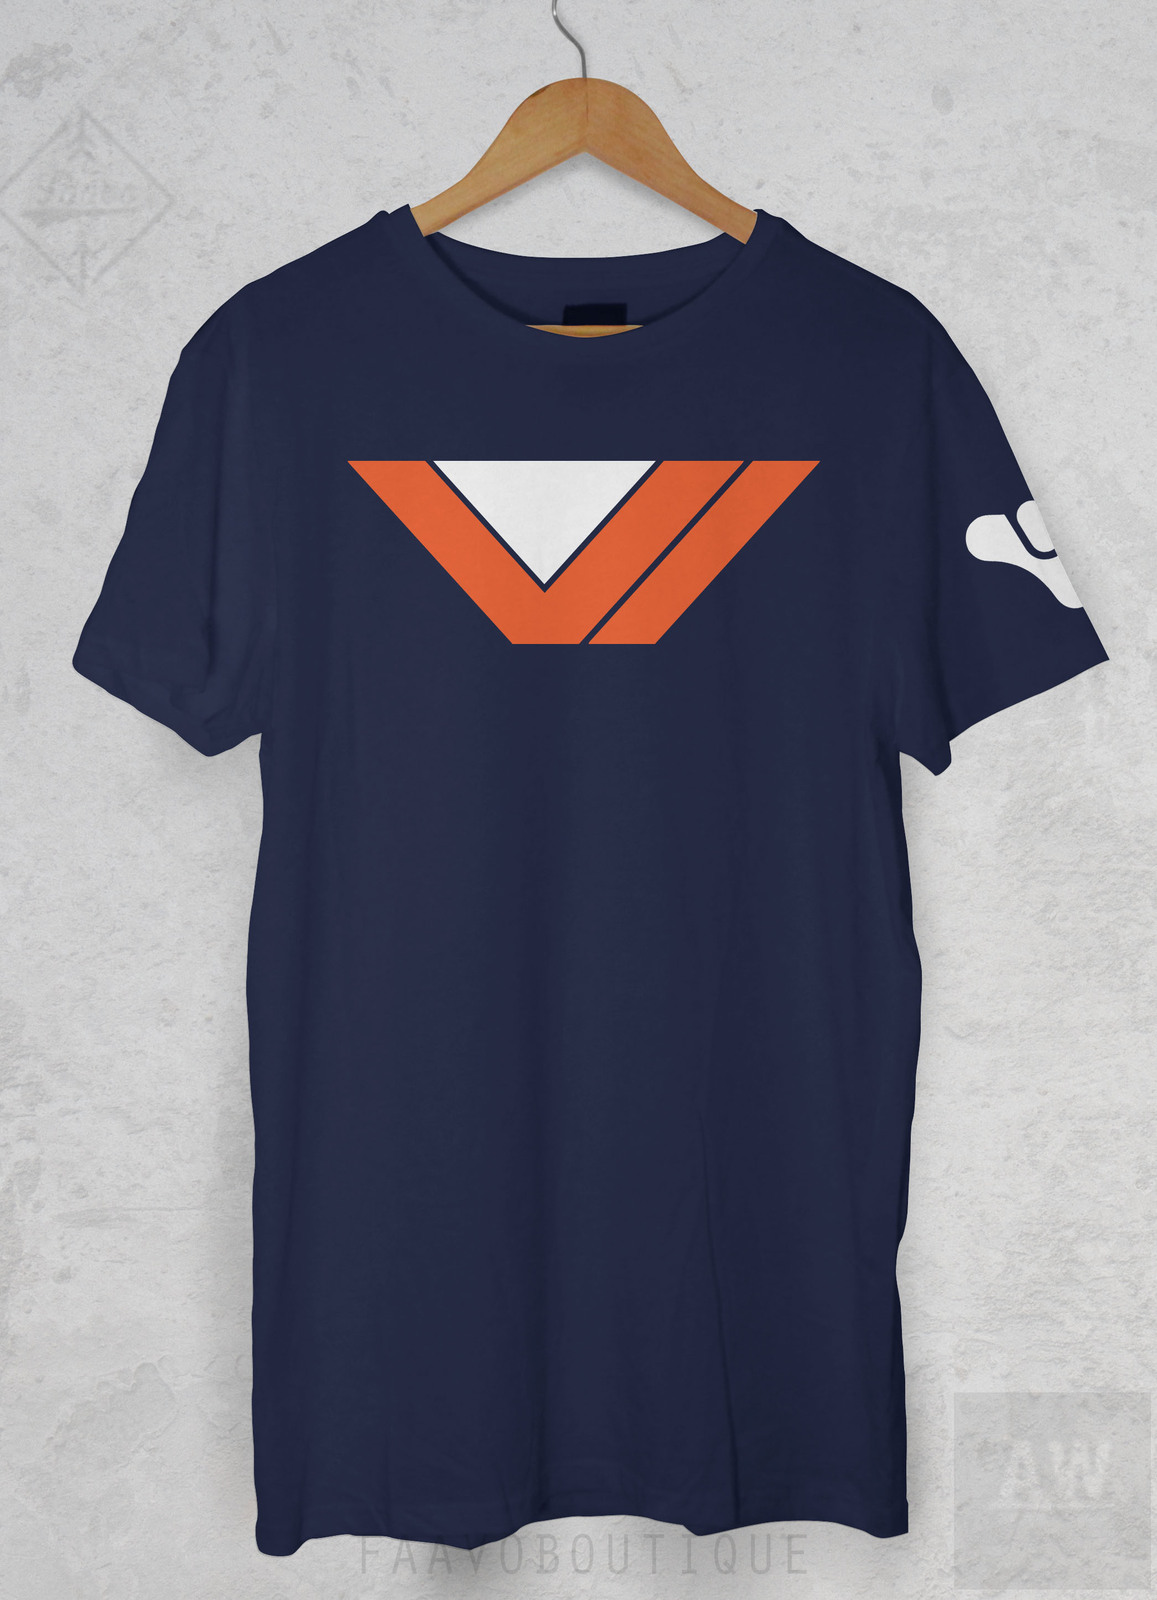 f6e03983fbe Destiny Vanguard Graphic Tee Unisex T Shirt and similar items. Vanguardbluew